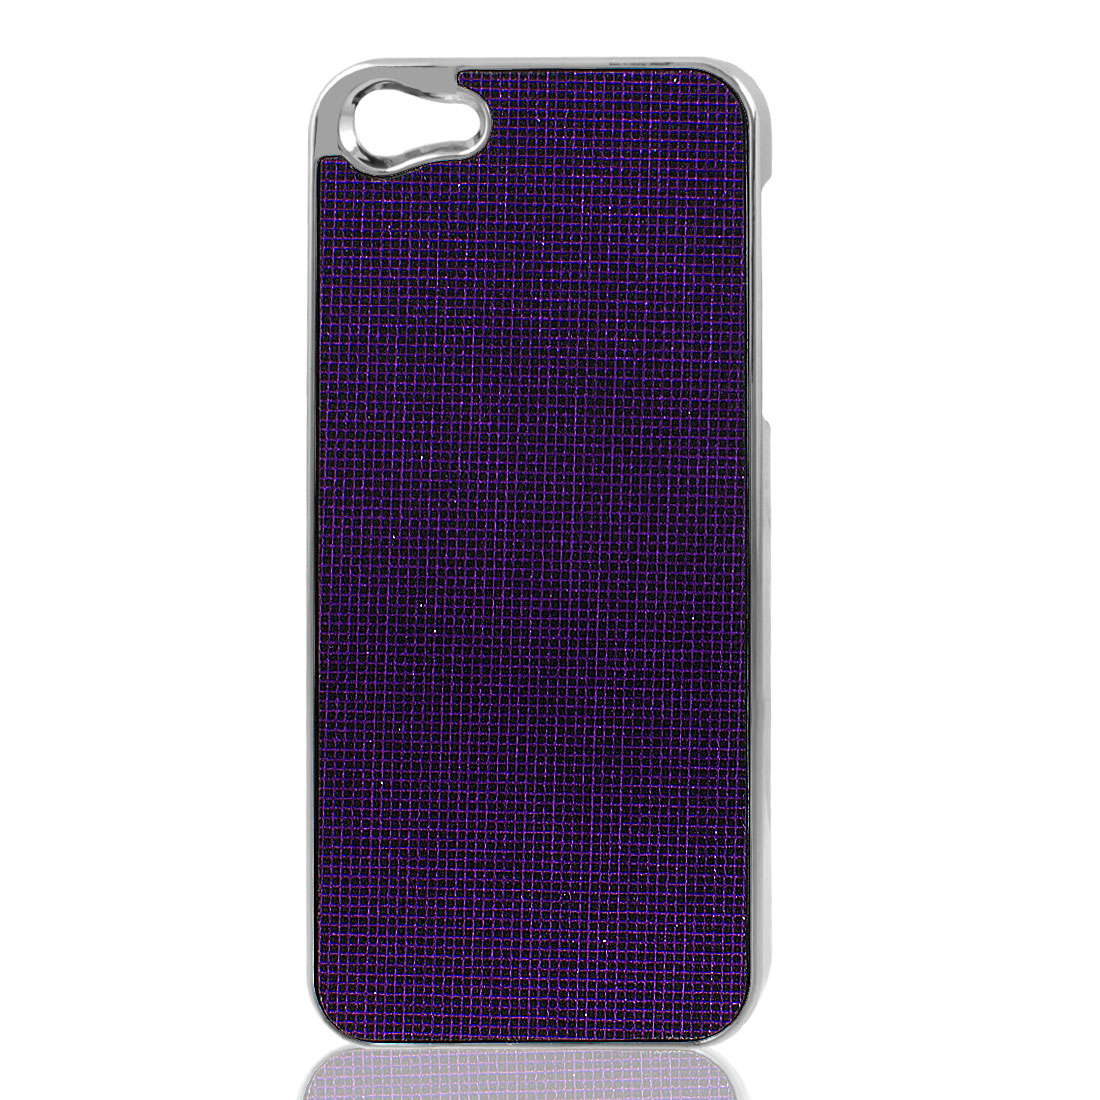 Purple Bling Glittery Hard Plastic Back Case Cover for iPhone 5 5G